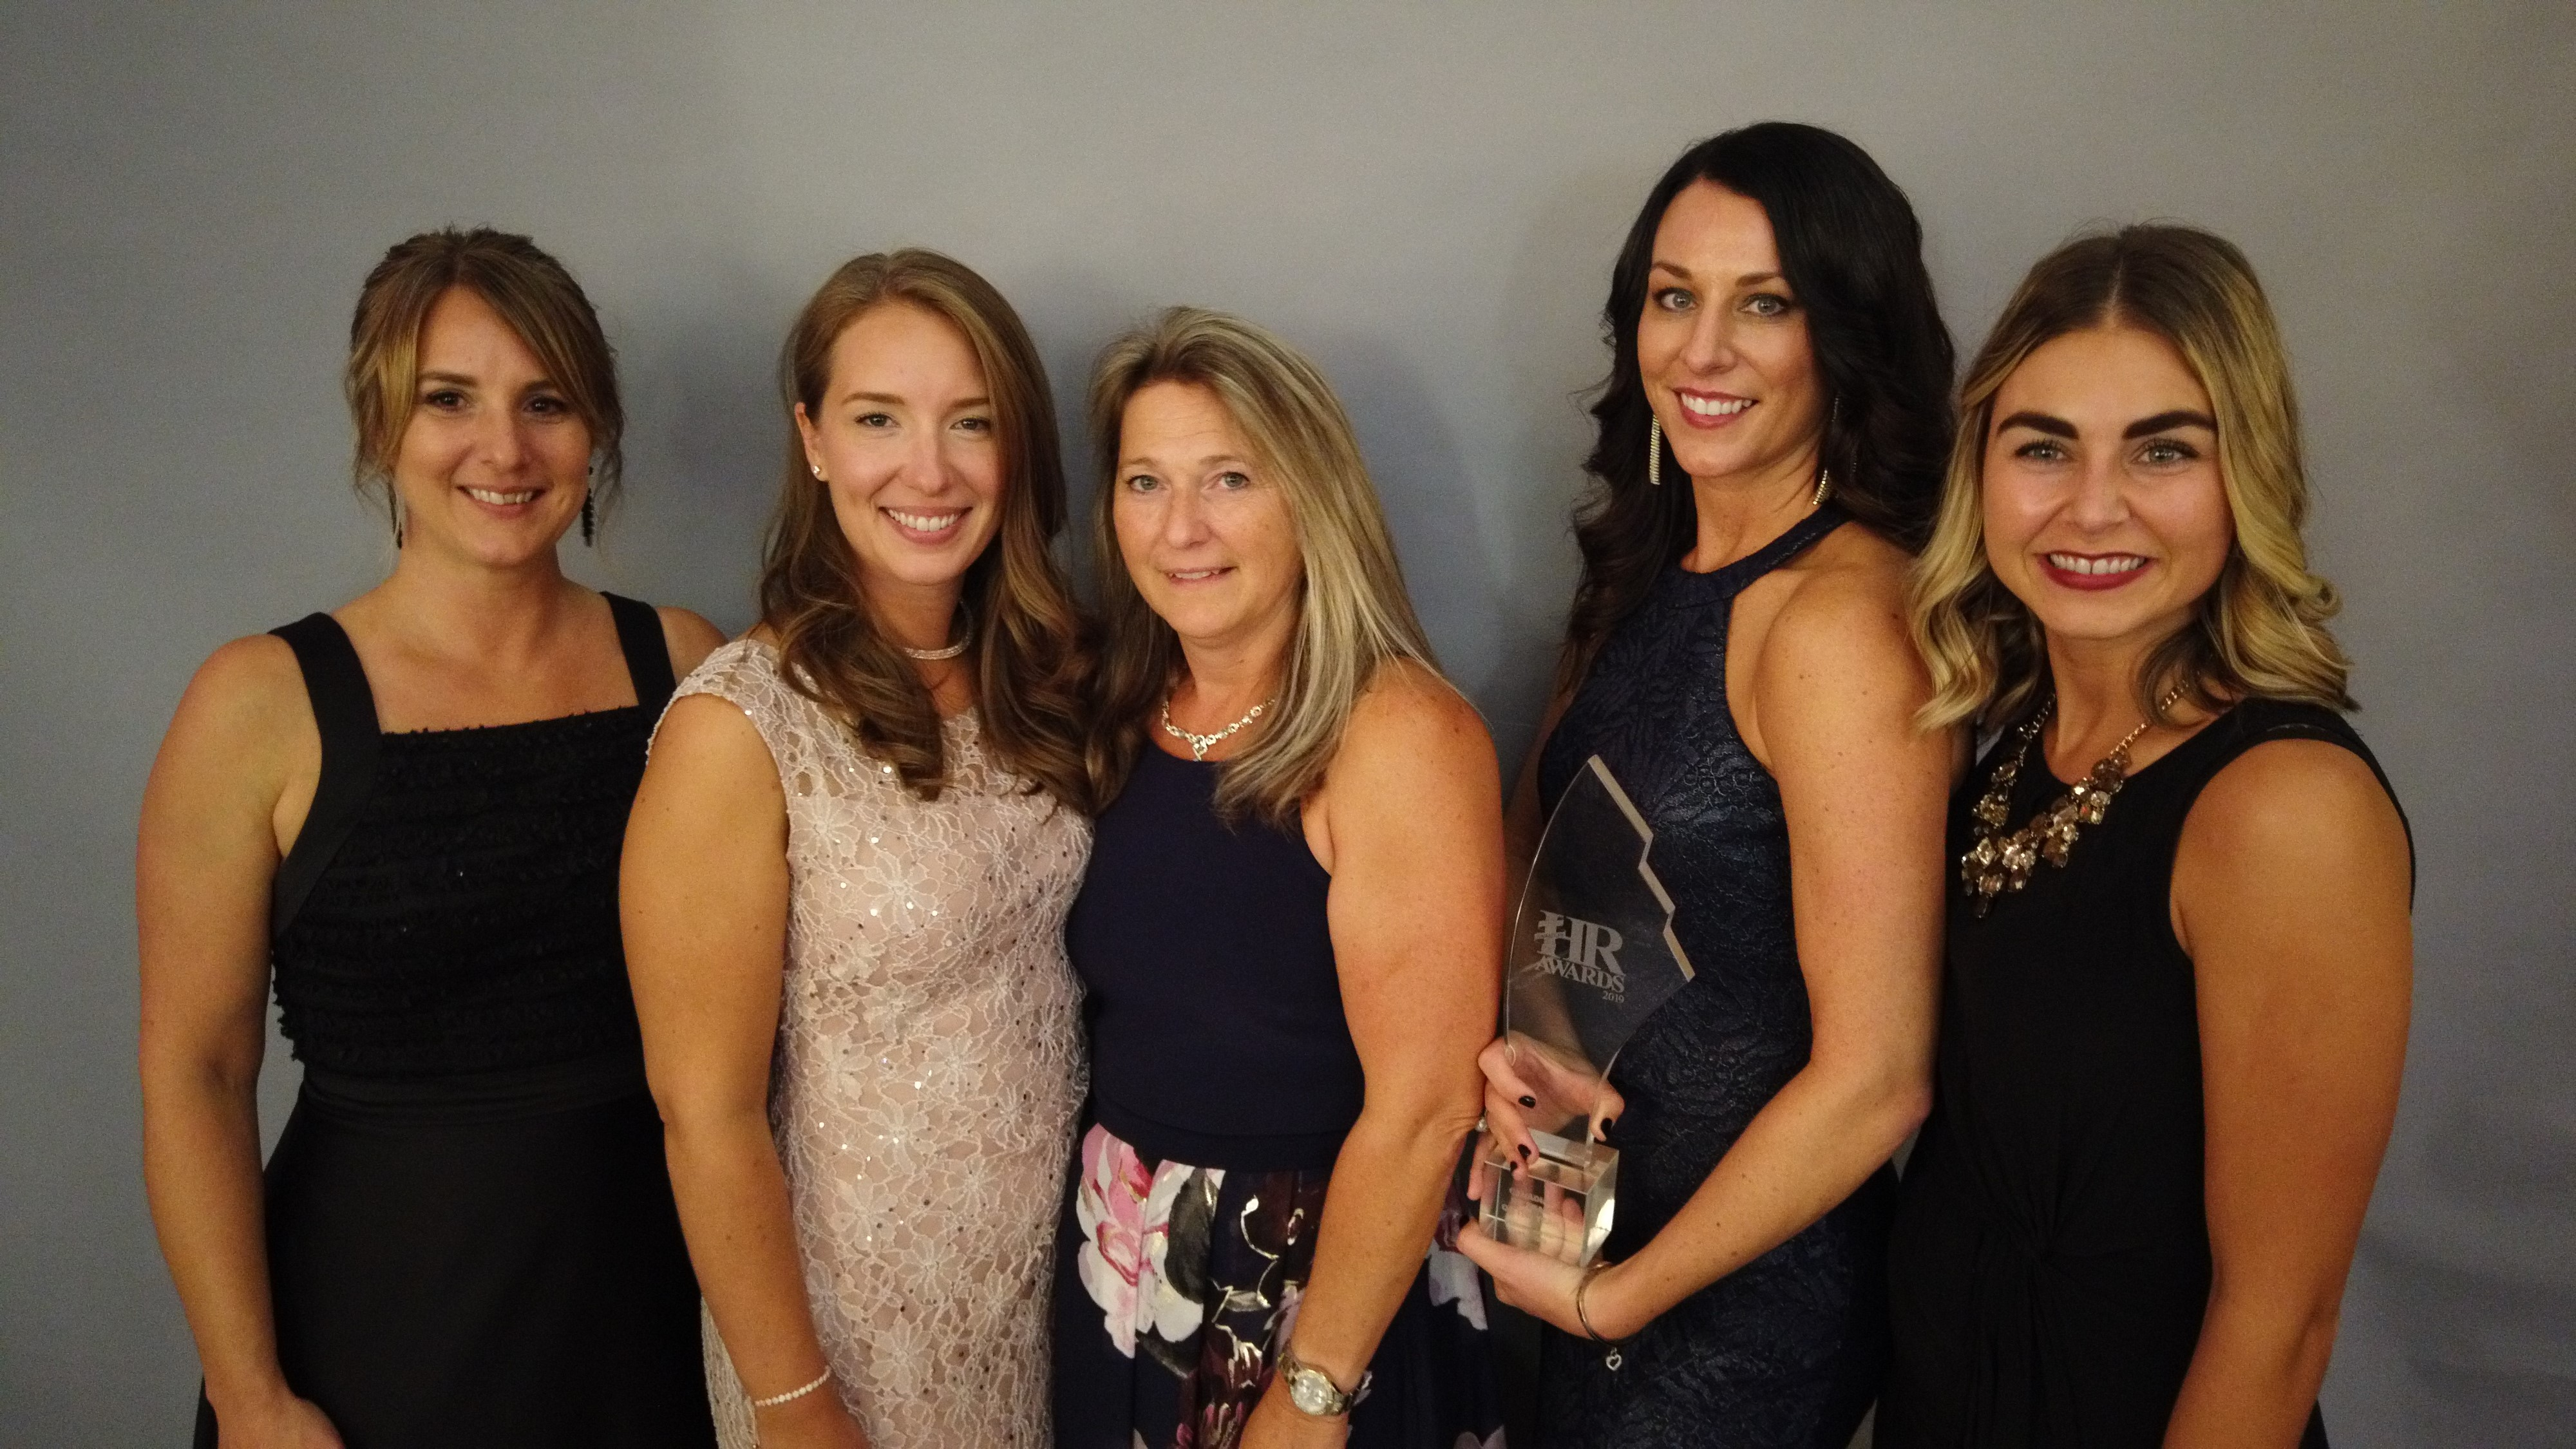 CARFAX Canada Wins HR Team of the Year at 2019 Canadian HR Awards